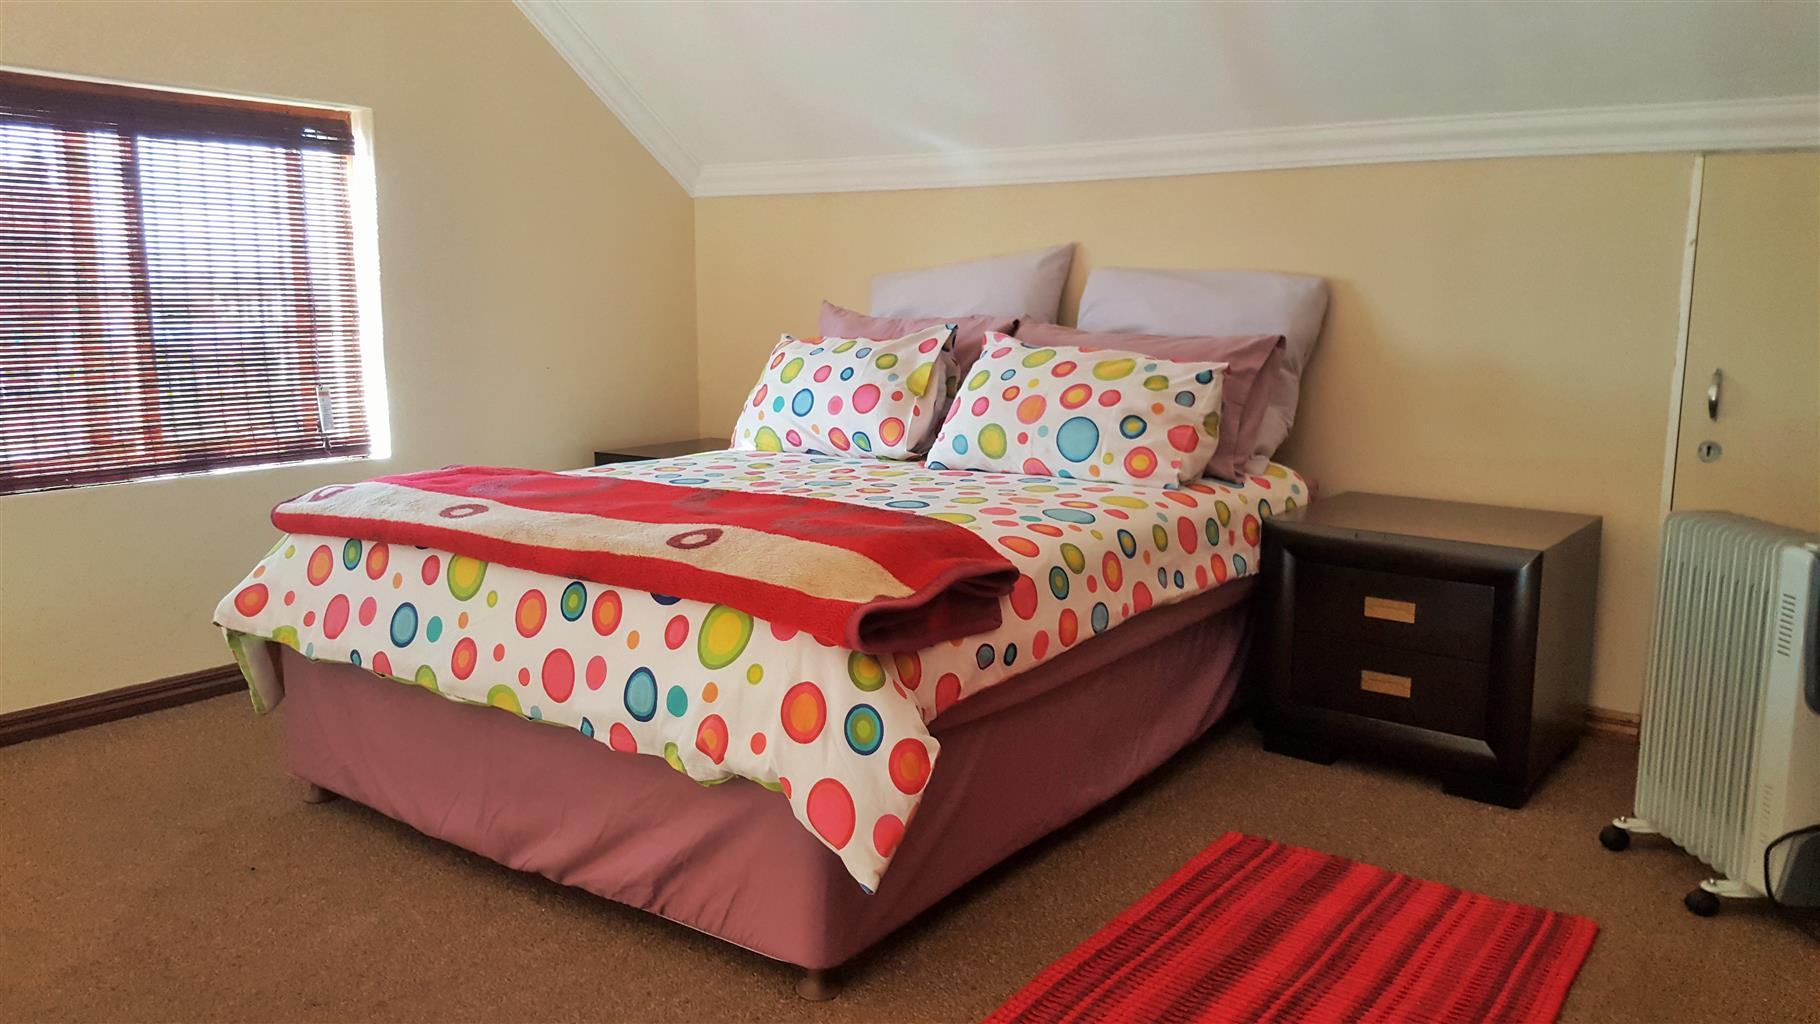 1 BEDROOM APARTMENT TO LET IN CARLSWALD